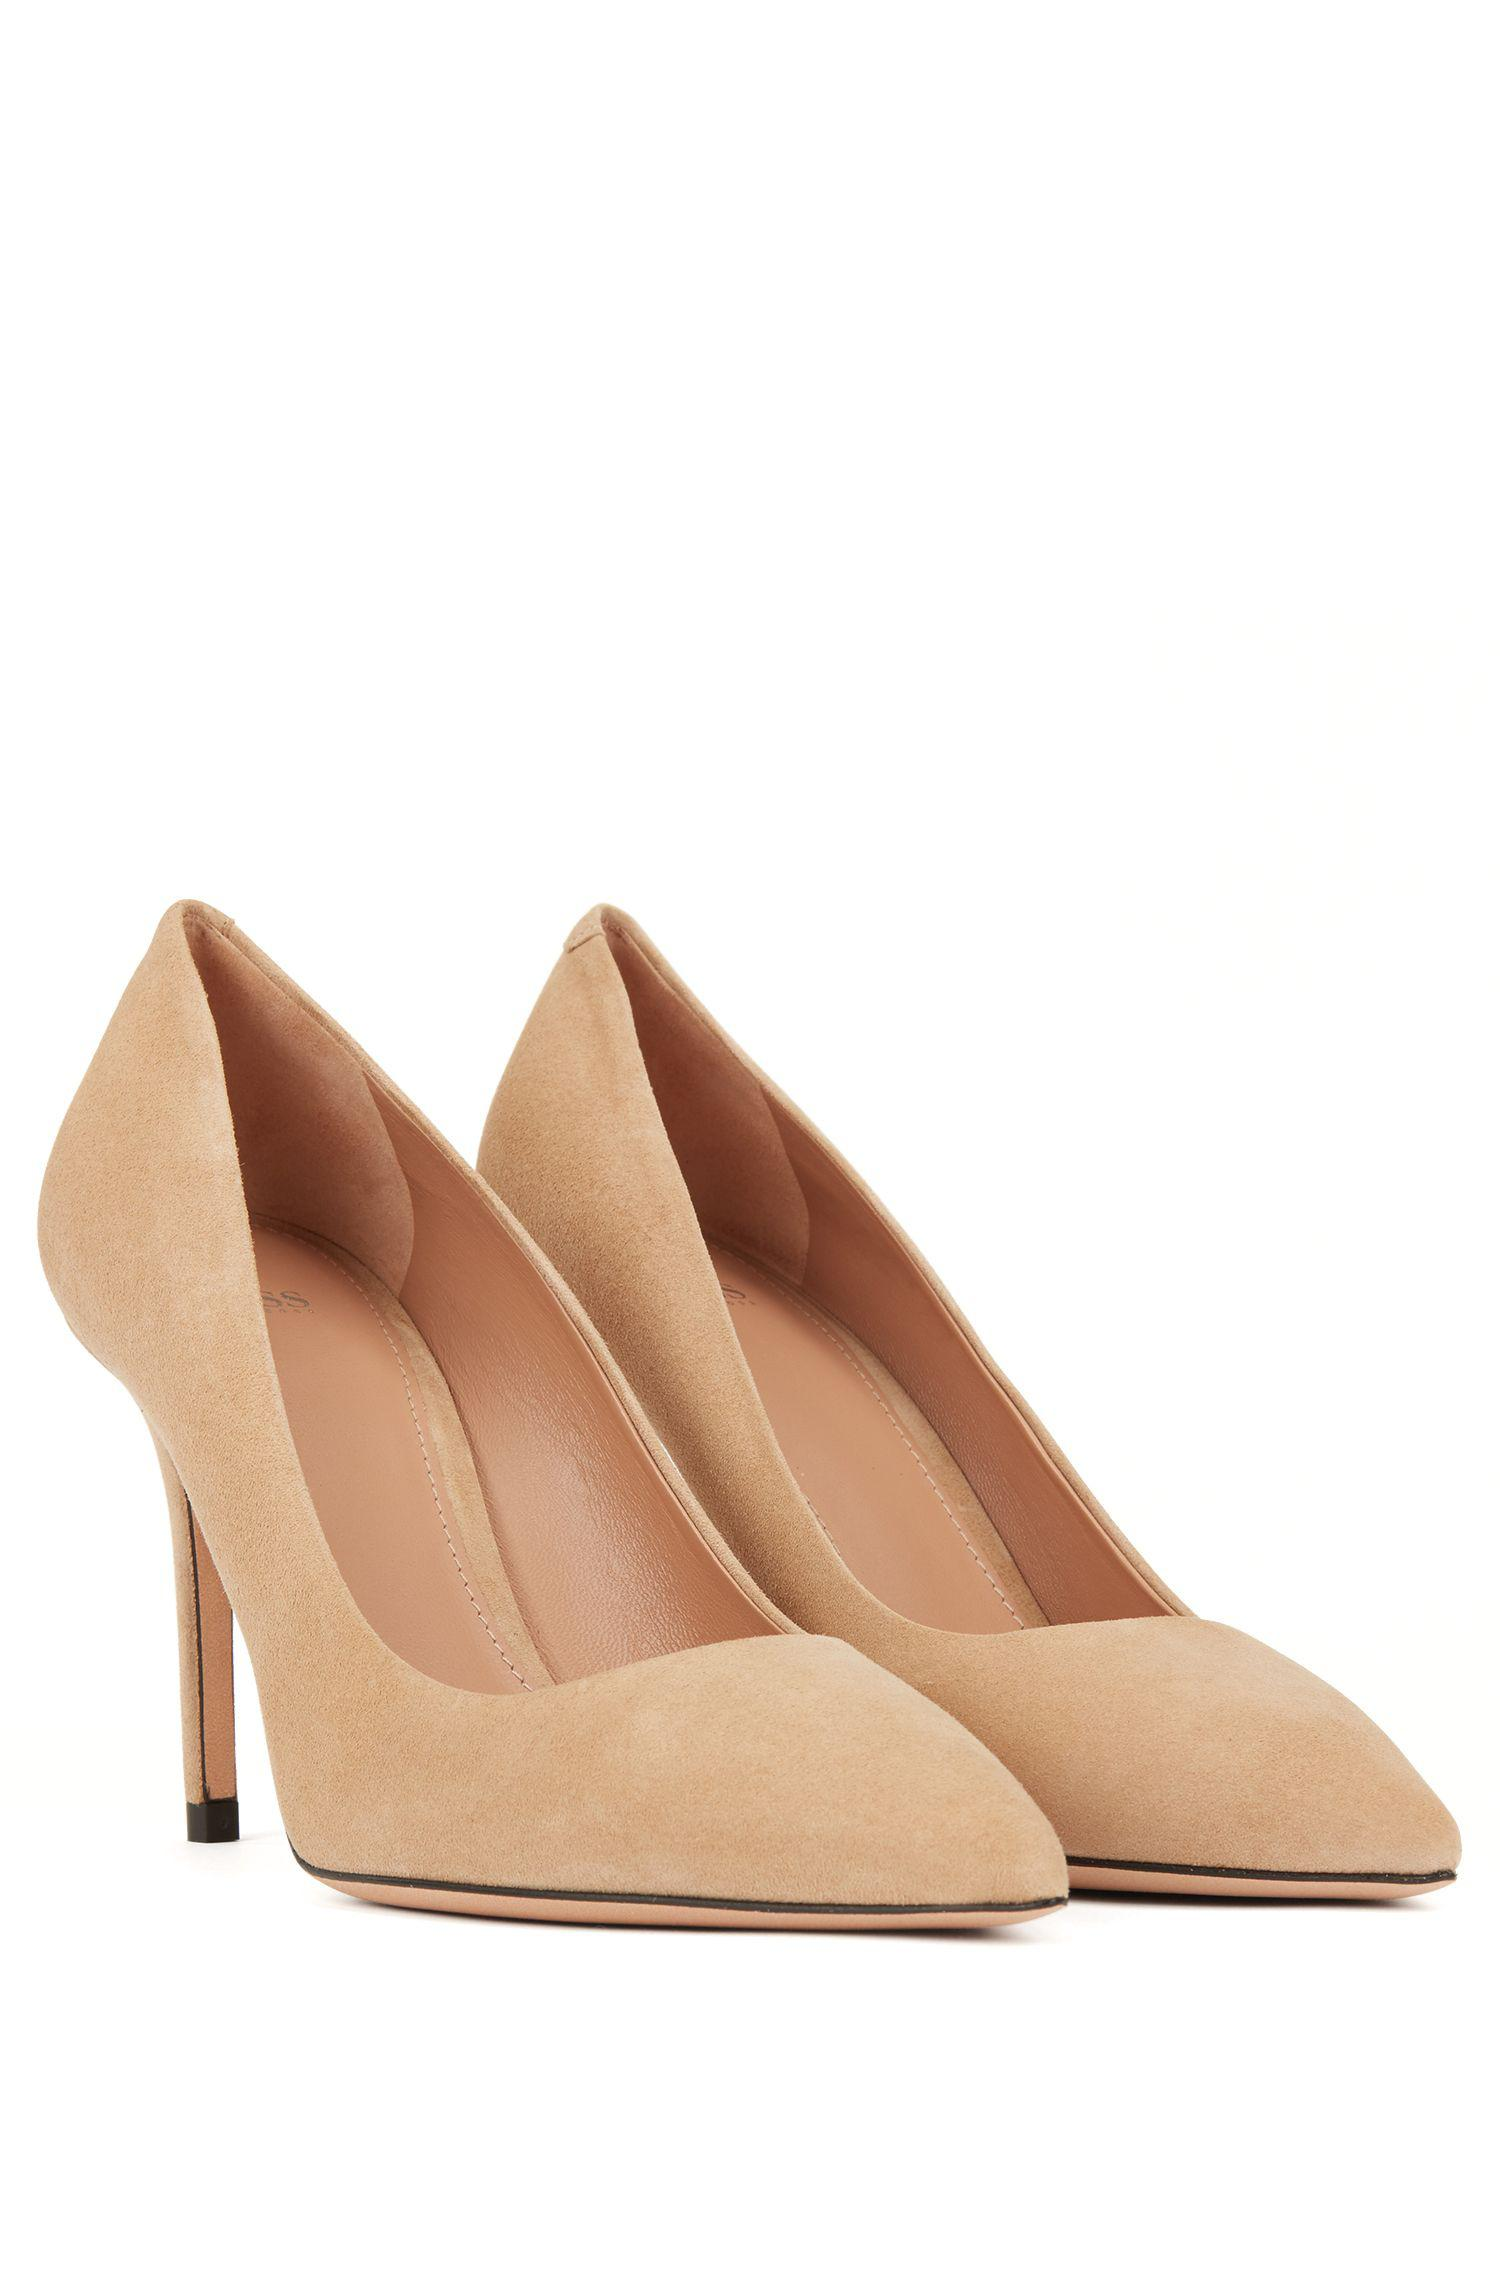 da11840f8fc ... Pointed-toe Court Shoes In Italian Suede - Lyst. View fullscreen